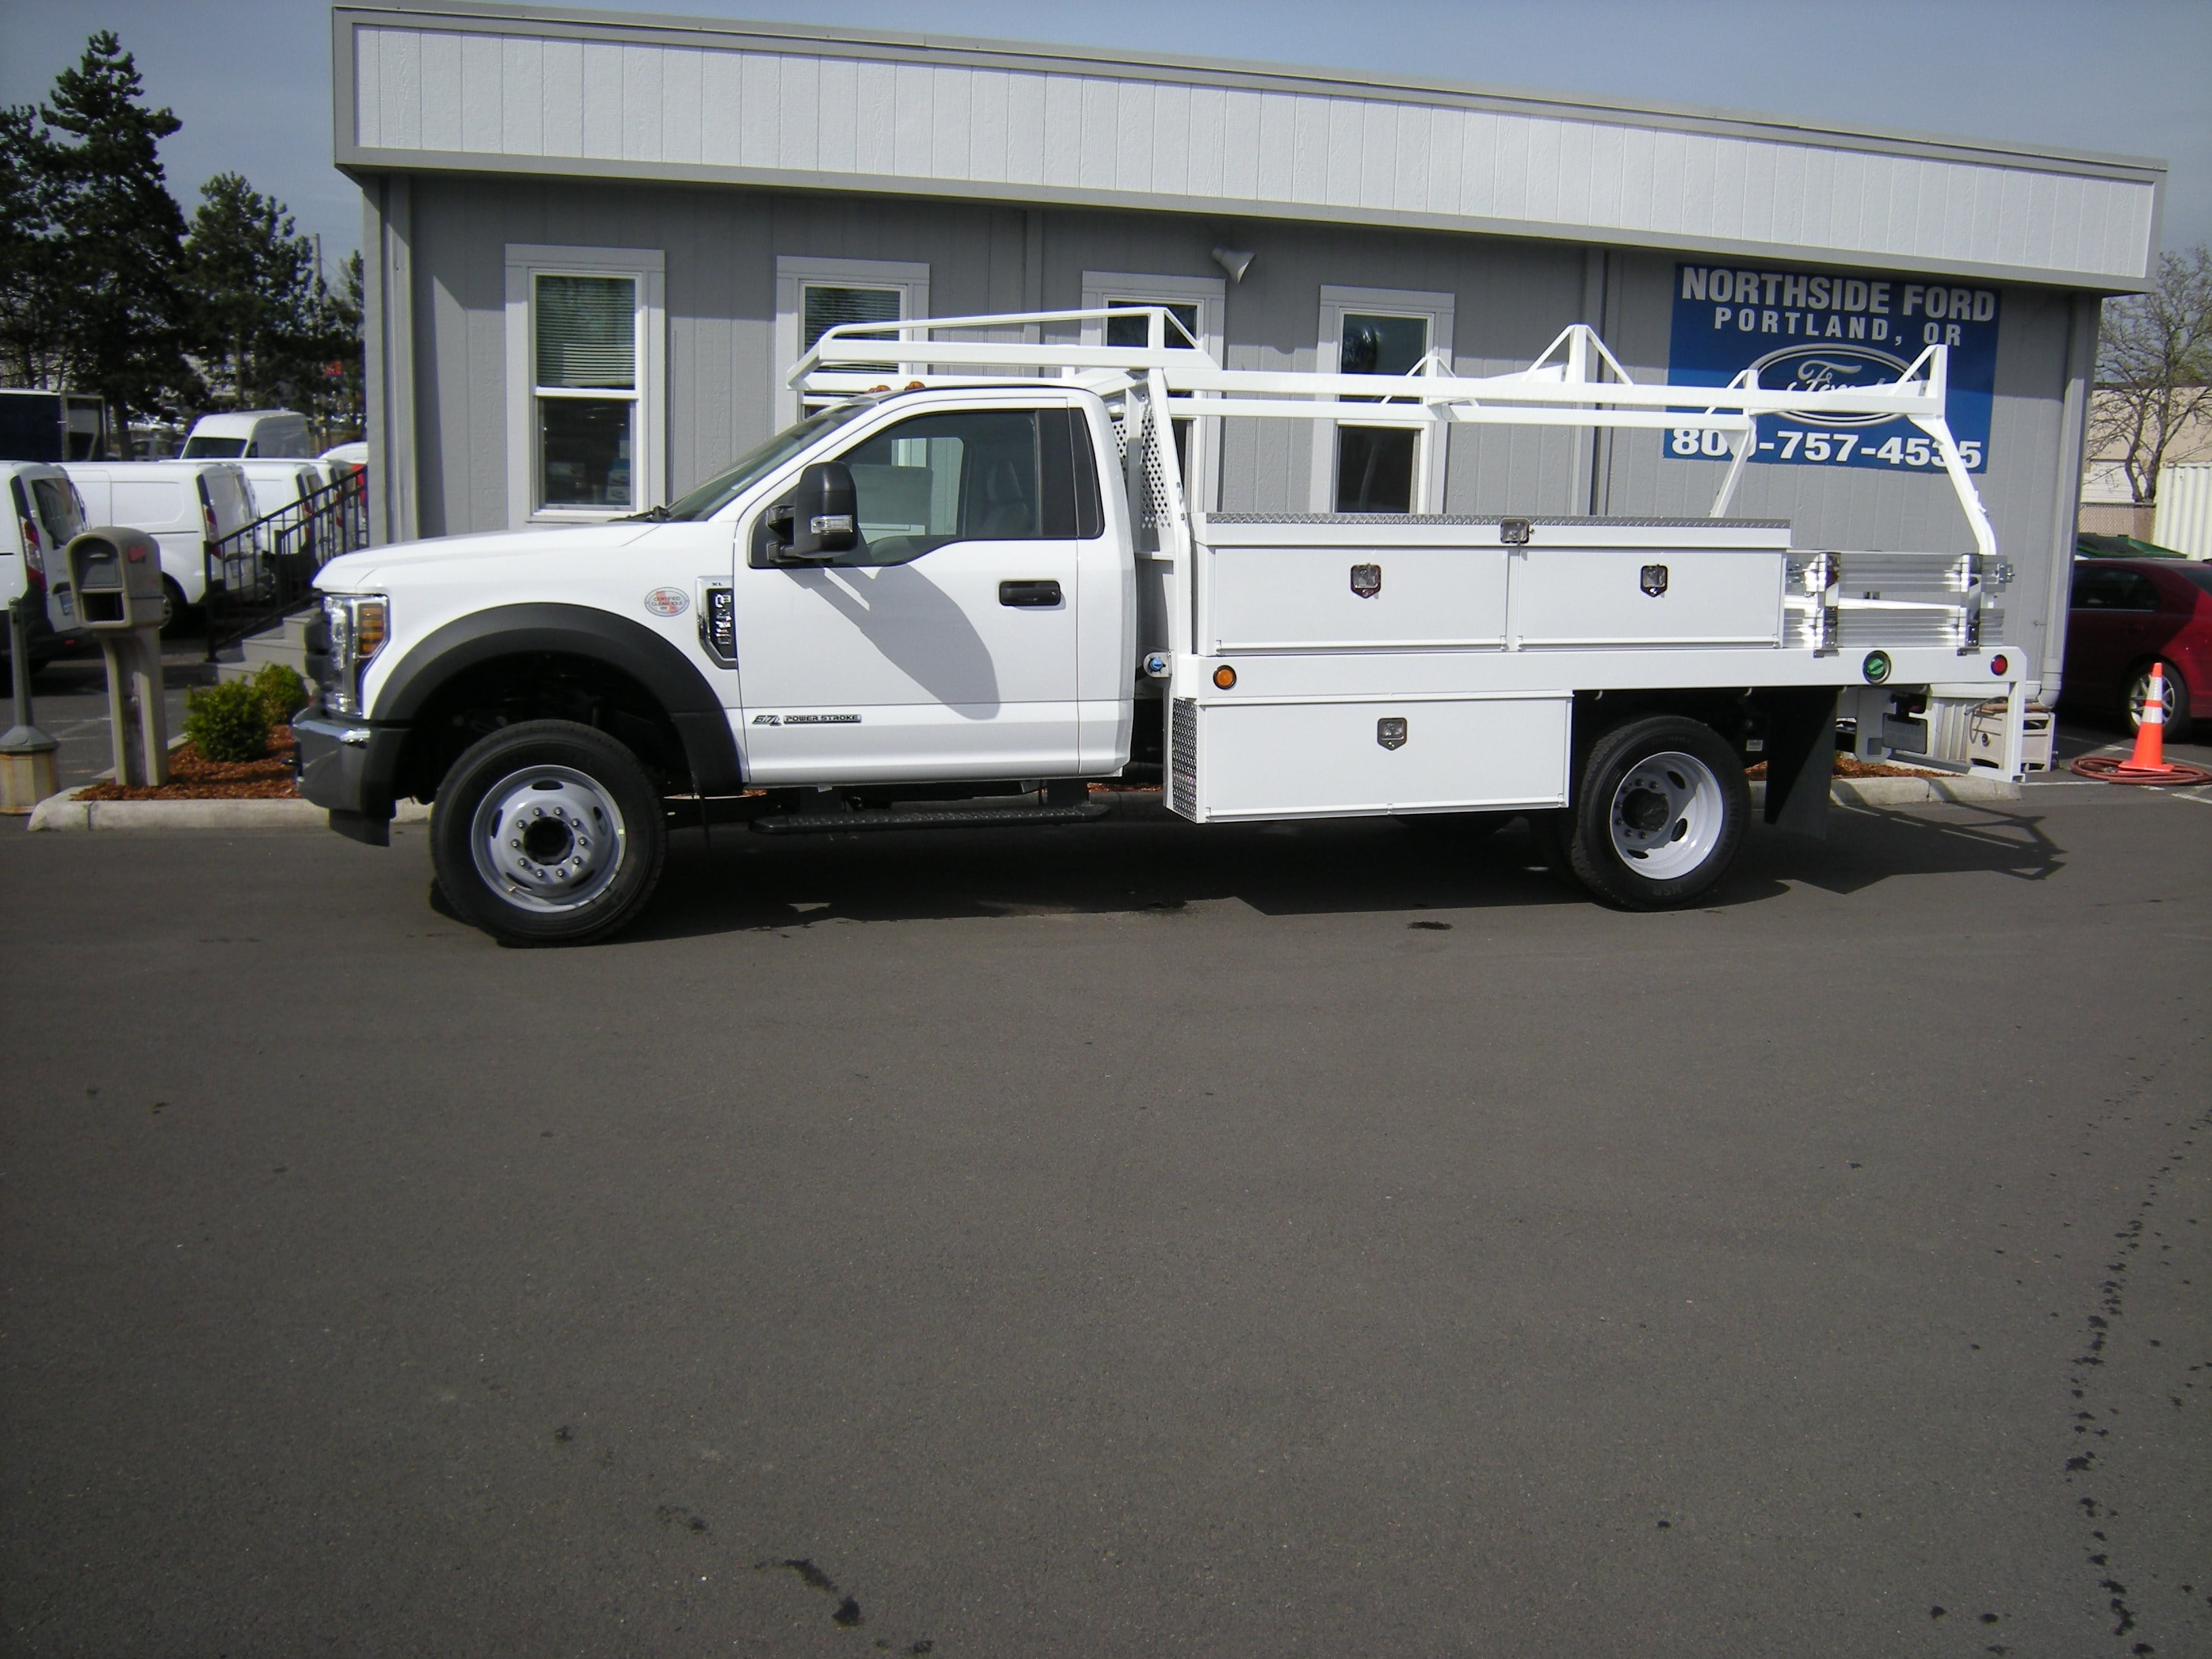 2018 F-450 Regular Cab DRW, Contractor Body #4706 - photo 4